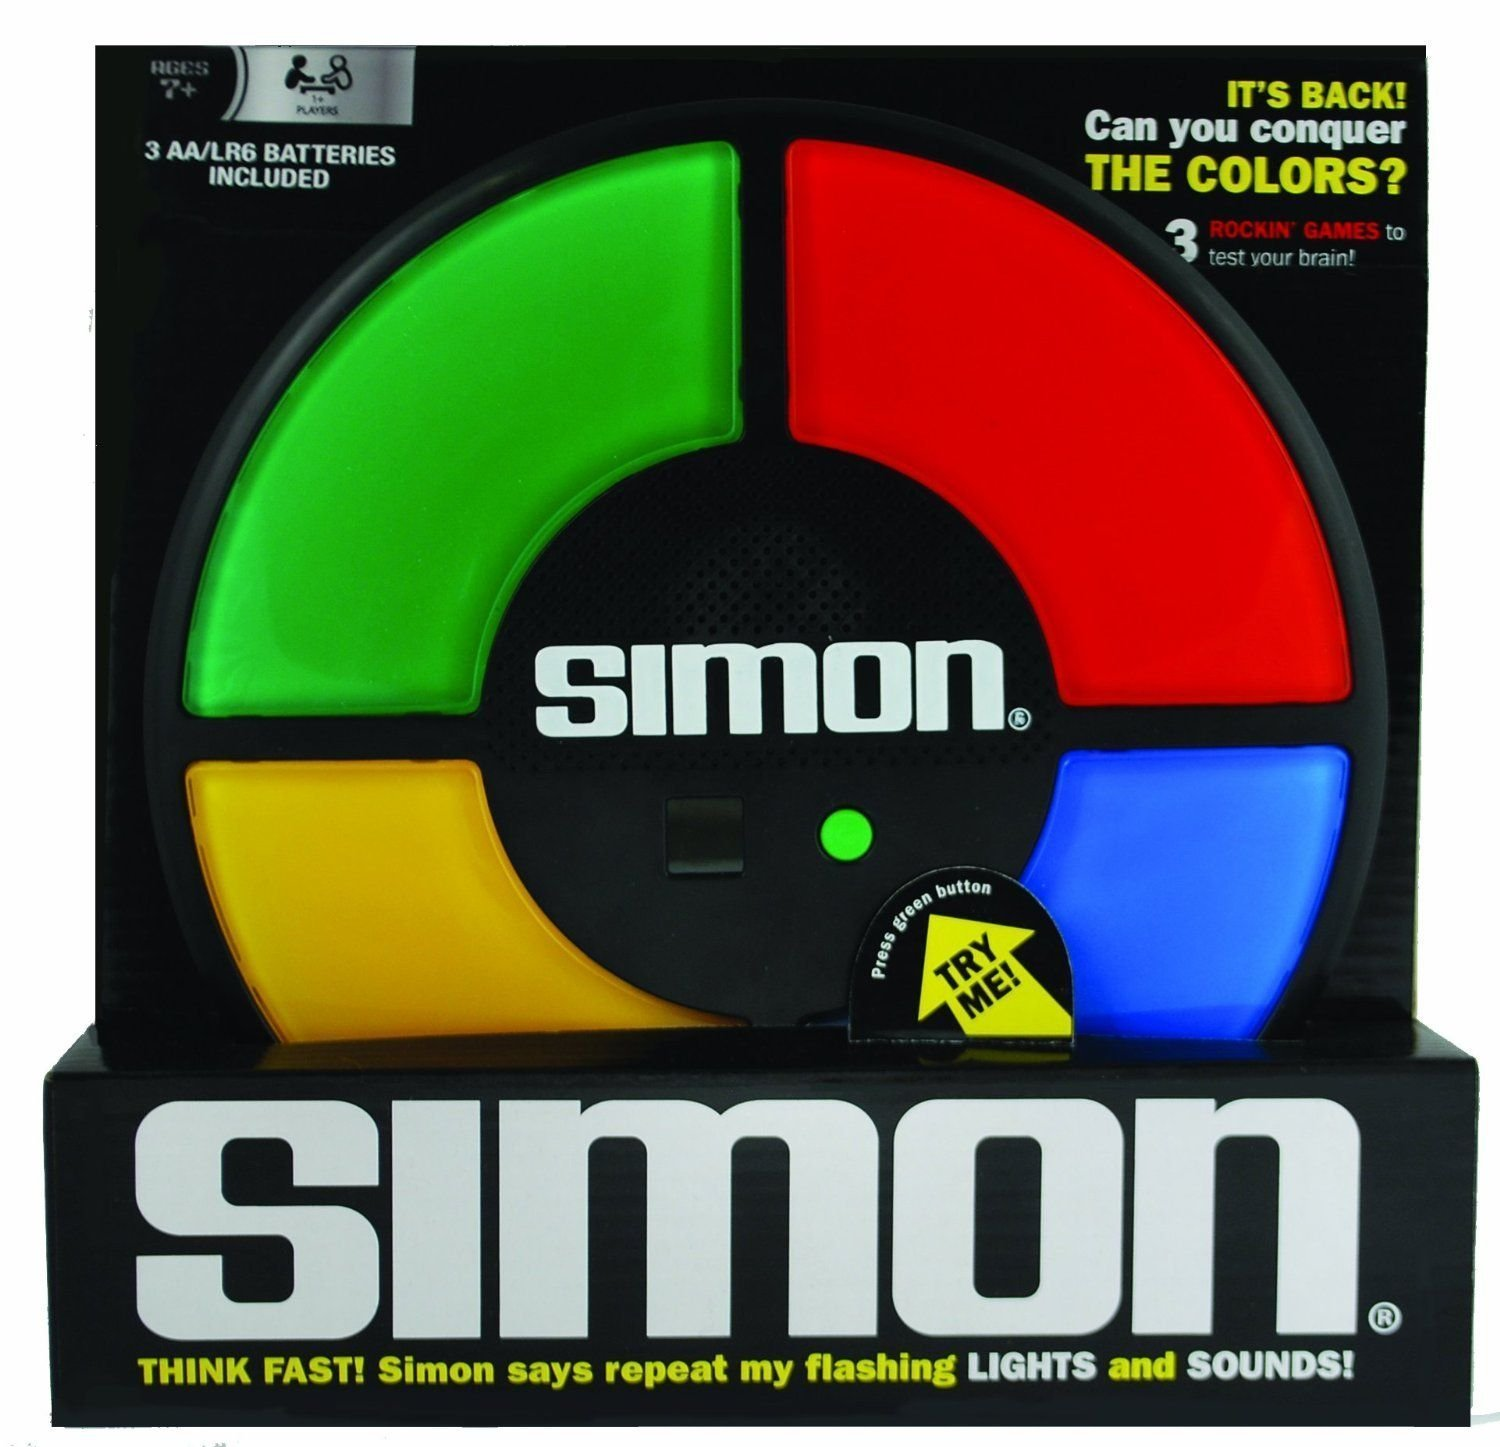 Simon Electronic Game for Memory